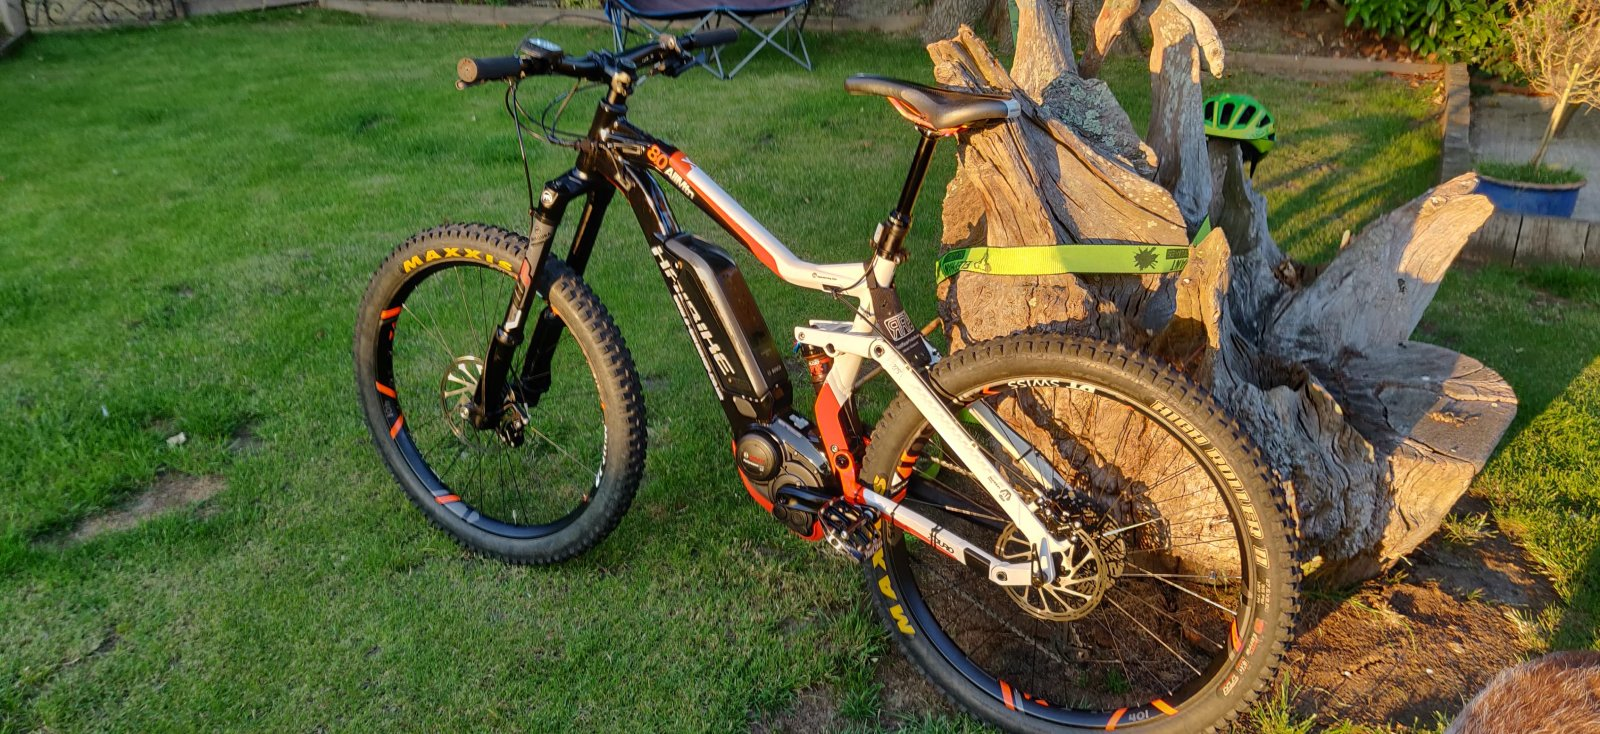 Haibike all mtn 8 , x duro for sale - EMTB Forums